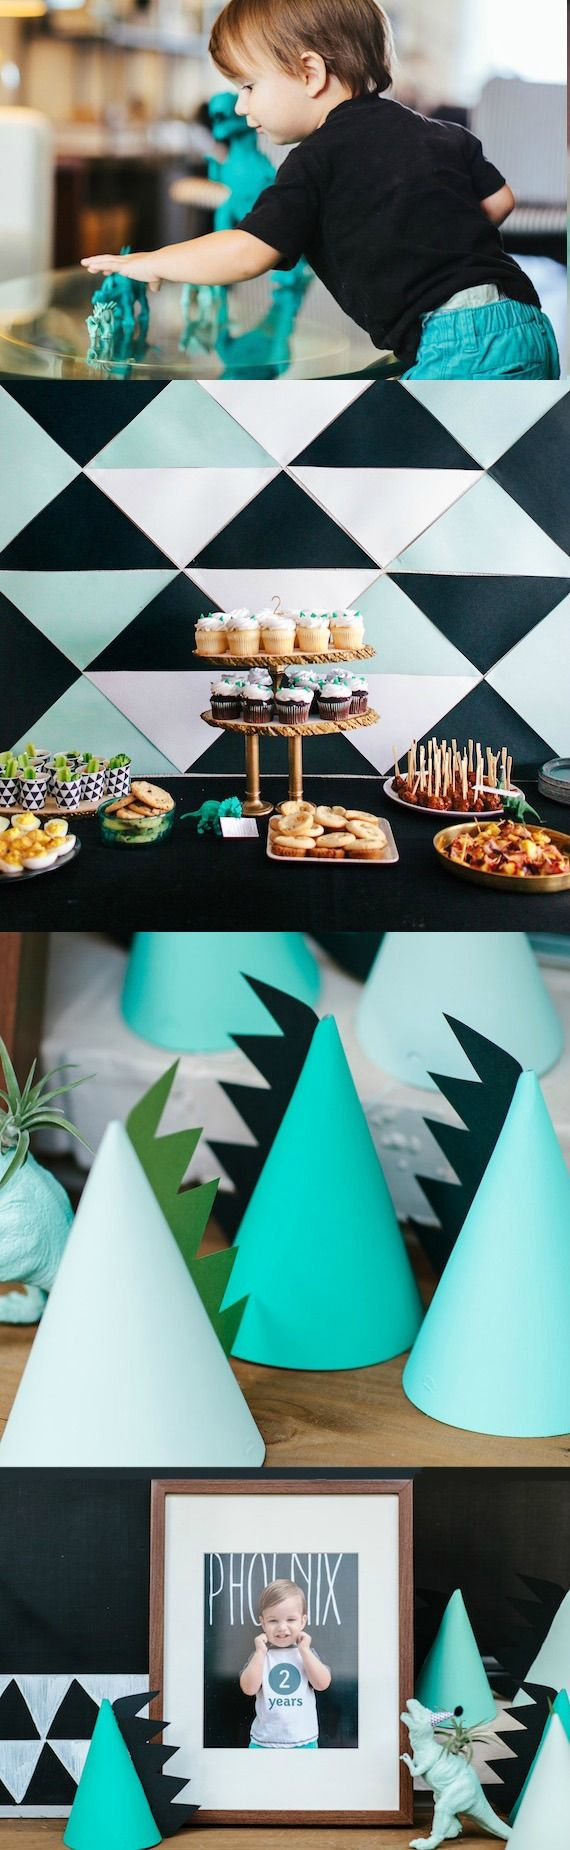 This dinosaur-themed kid's birthday party featured on 100 Layer Cake-let is sure to be a smashing and roaring good time! Complete with dinosaur hats, decorations, and dessert ideas—this is every little boy's dream celebration!